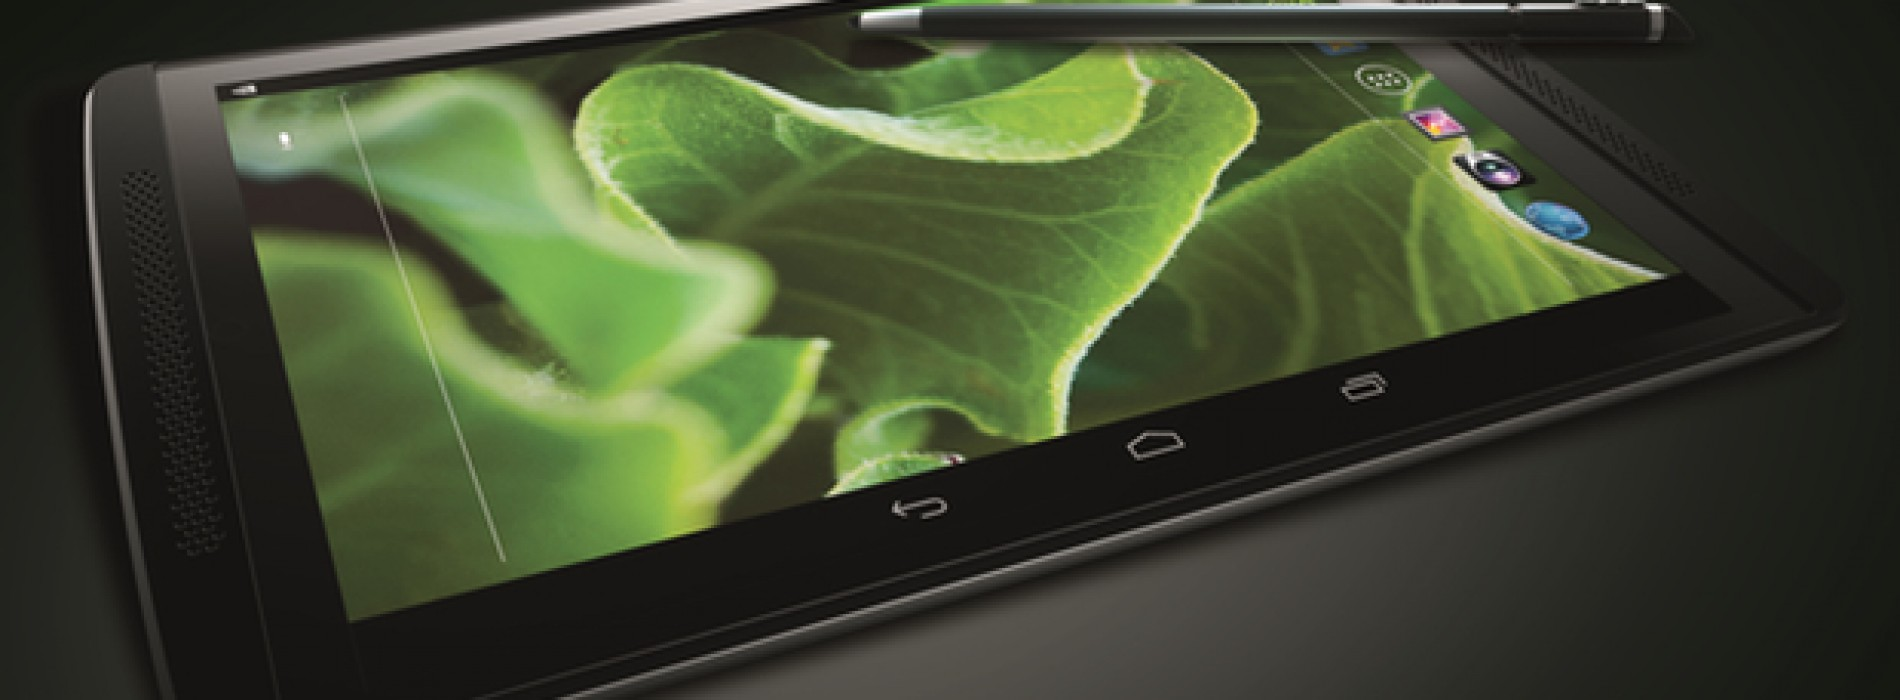 Tegra Note platform receives OTA to Android 4.3, enhancements and bug fixes